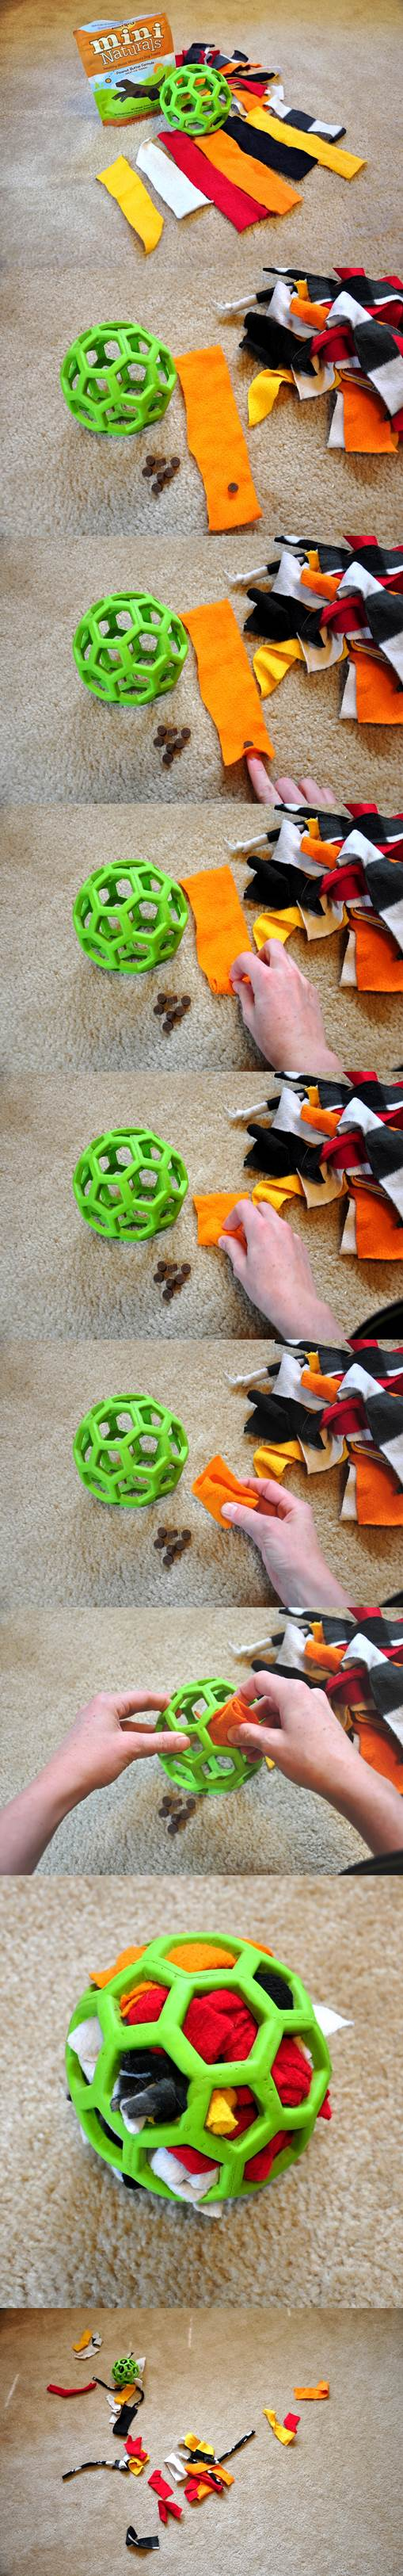 DIY Stuffed Ball Dog Toy 2